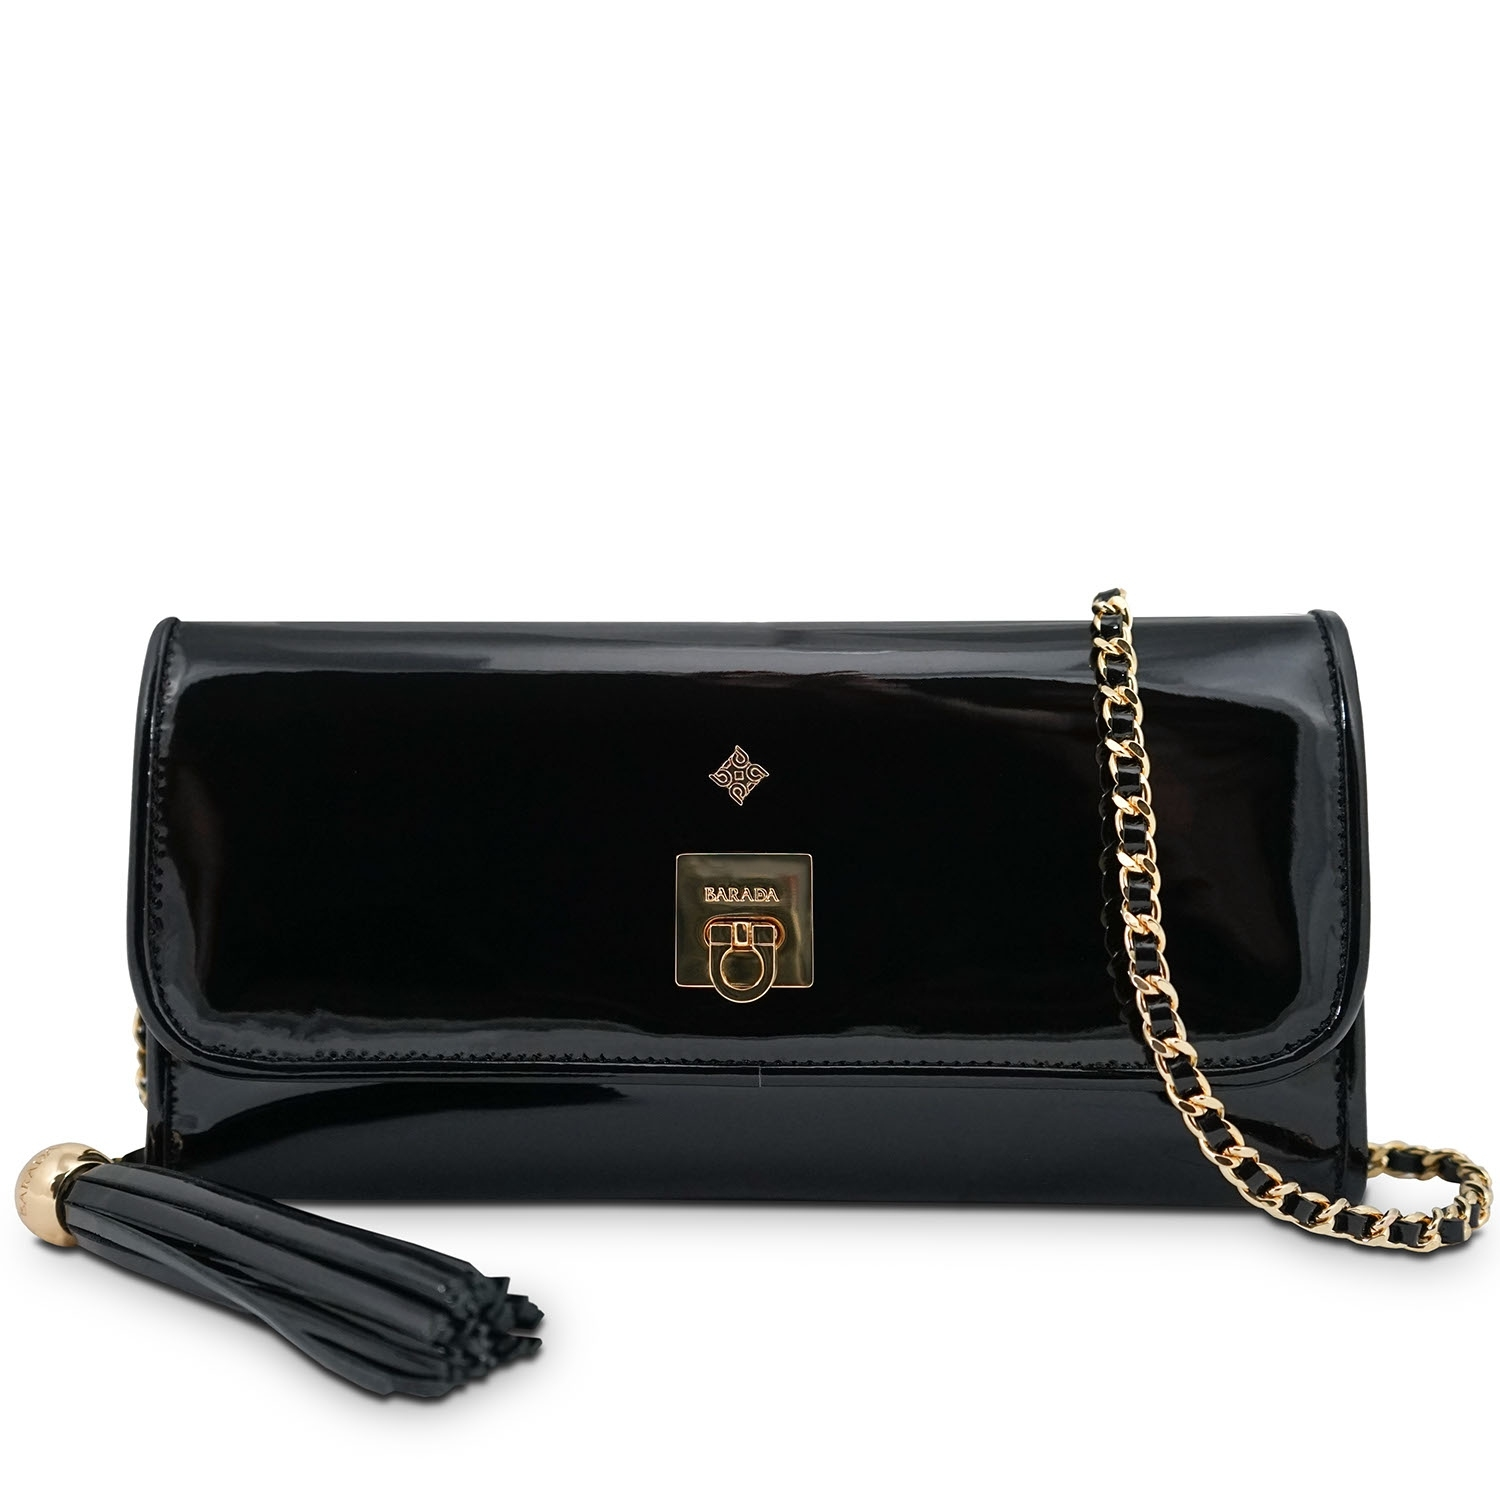 225efd9244 Clutch Handbag from our Fiesta collection in Patent Calf Leather and Black  color